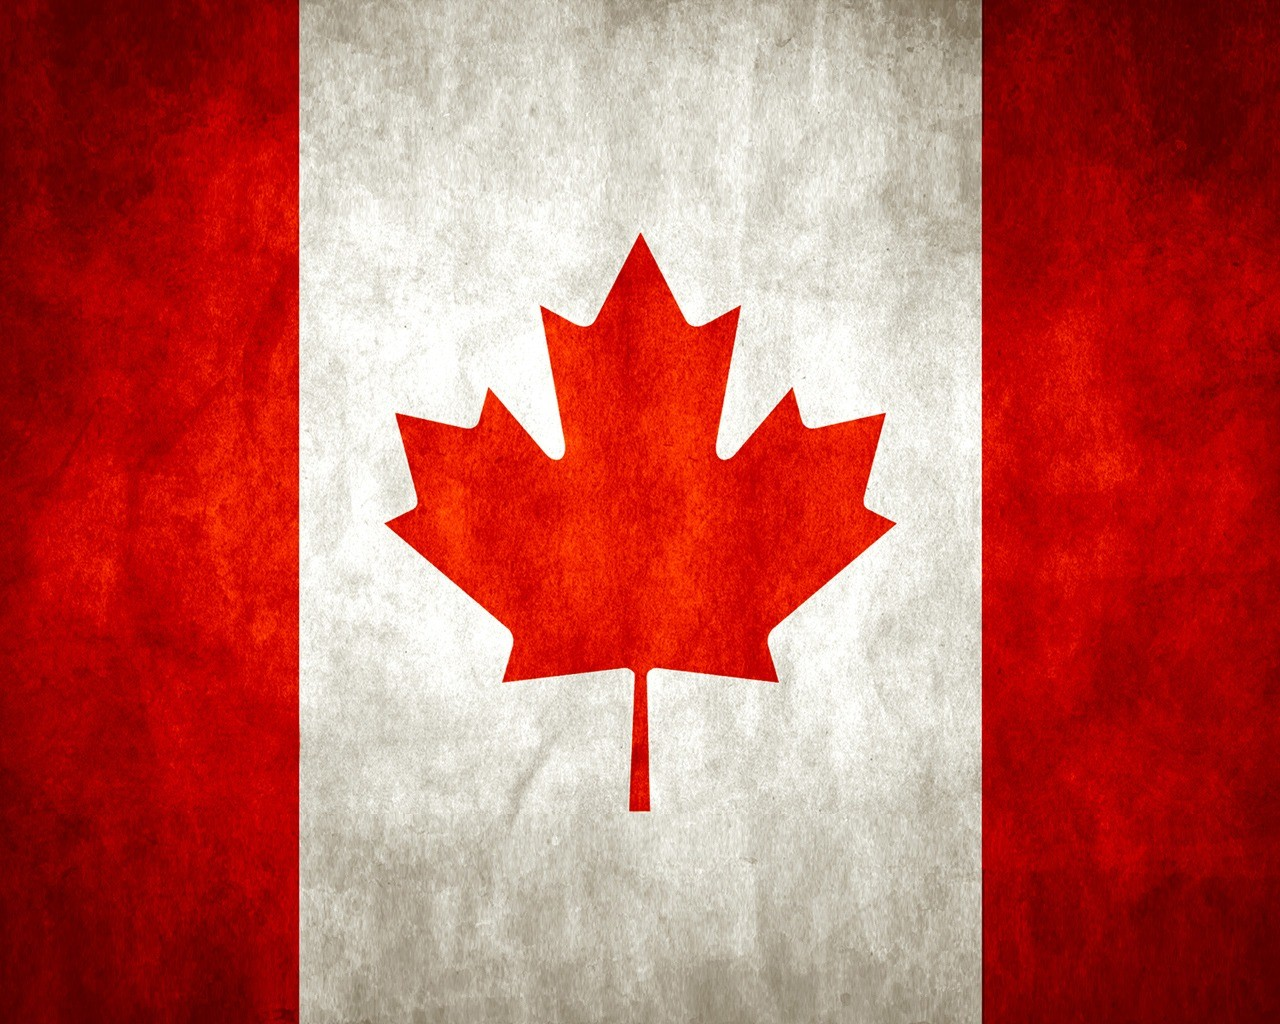 Canadian flag film production in Canada